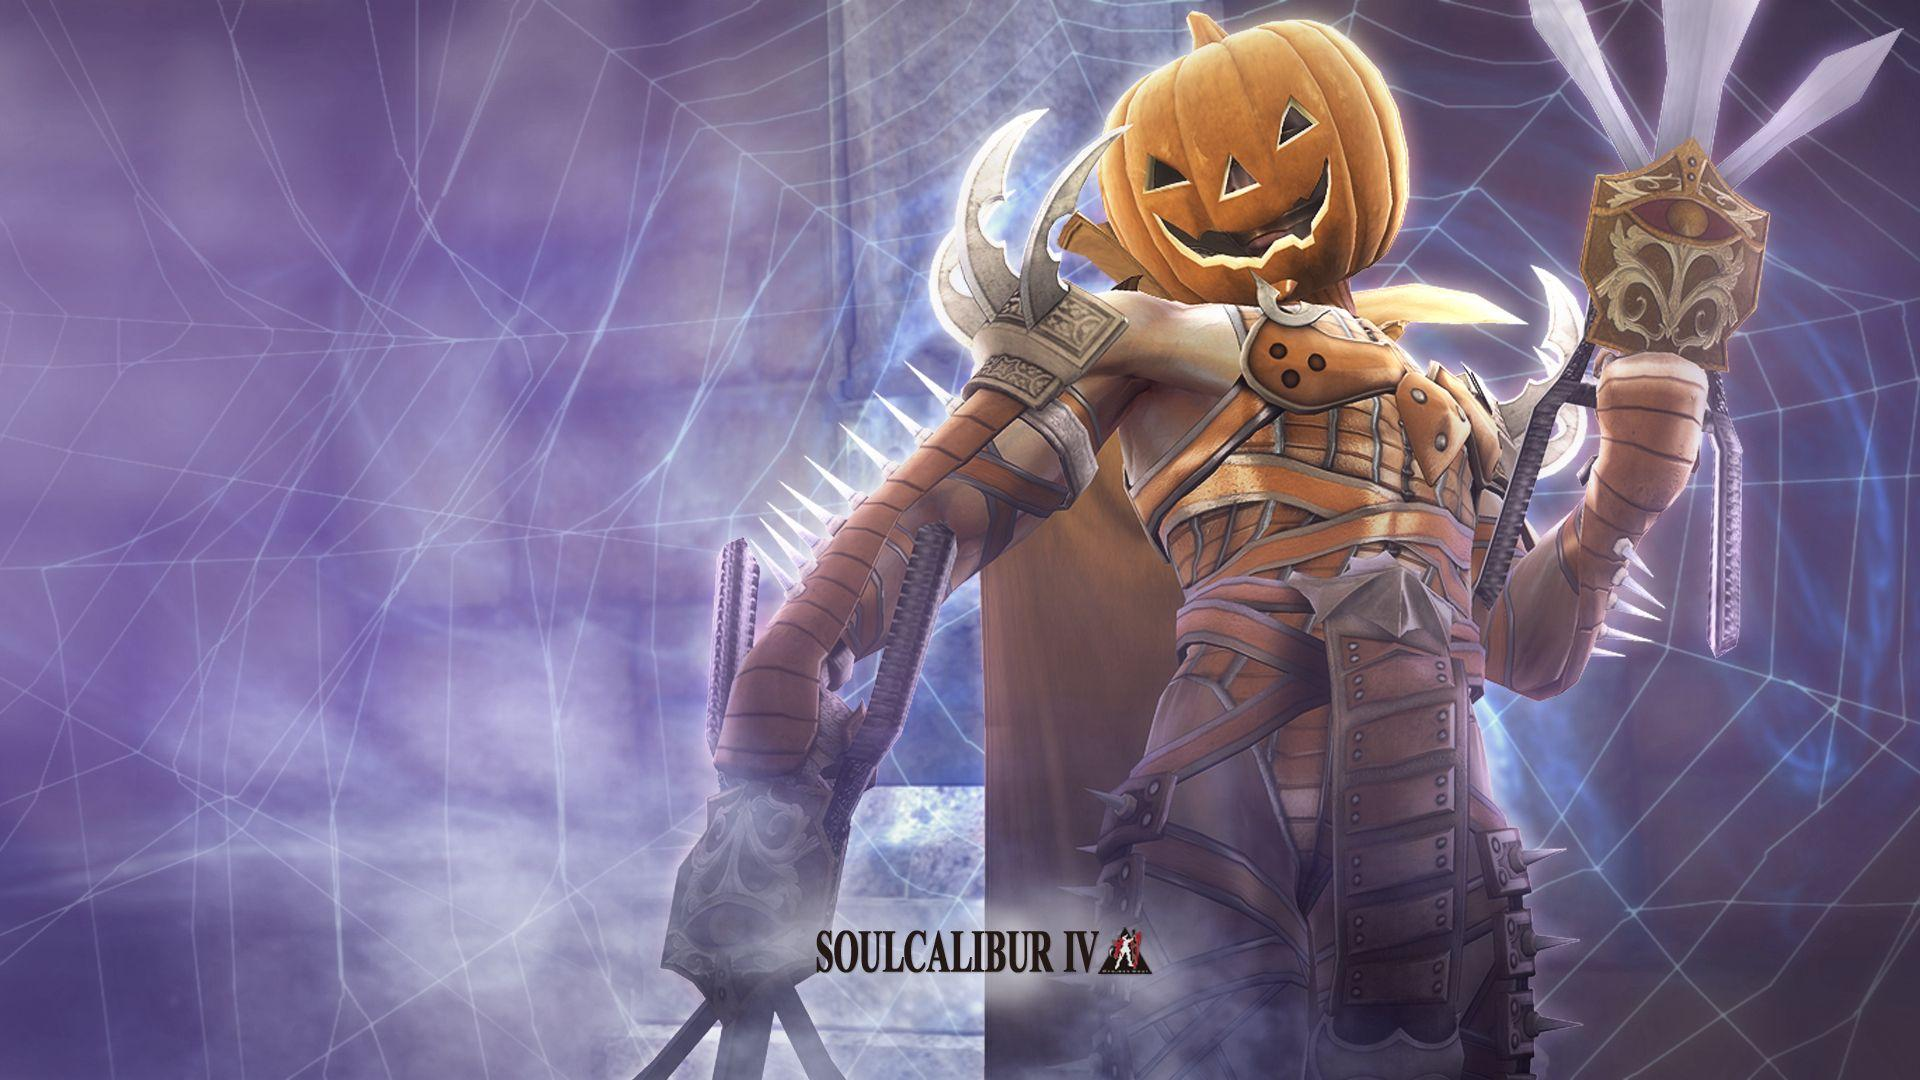 Soulcalibur HD Wallpapers 19